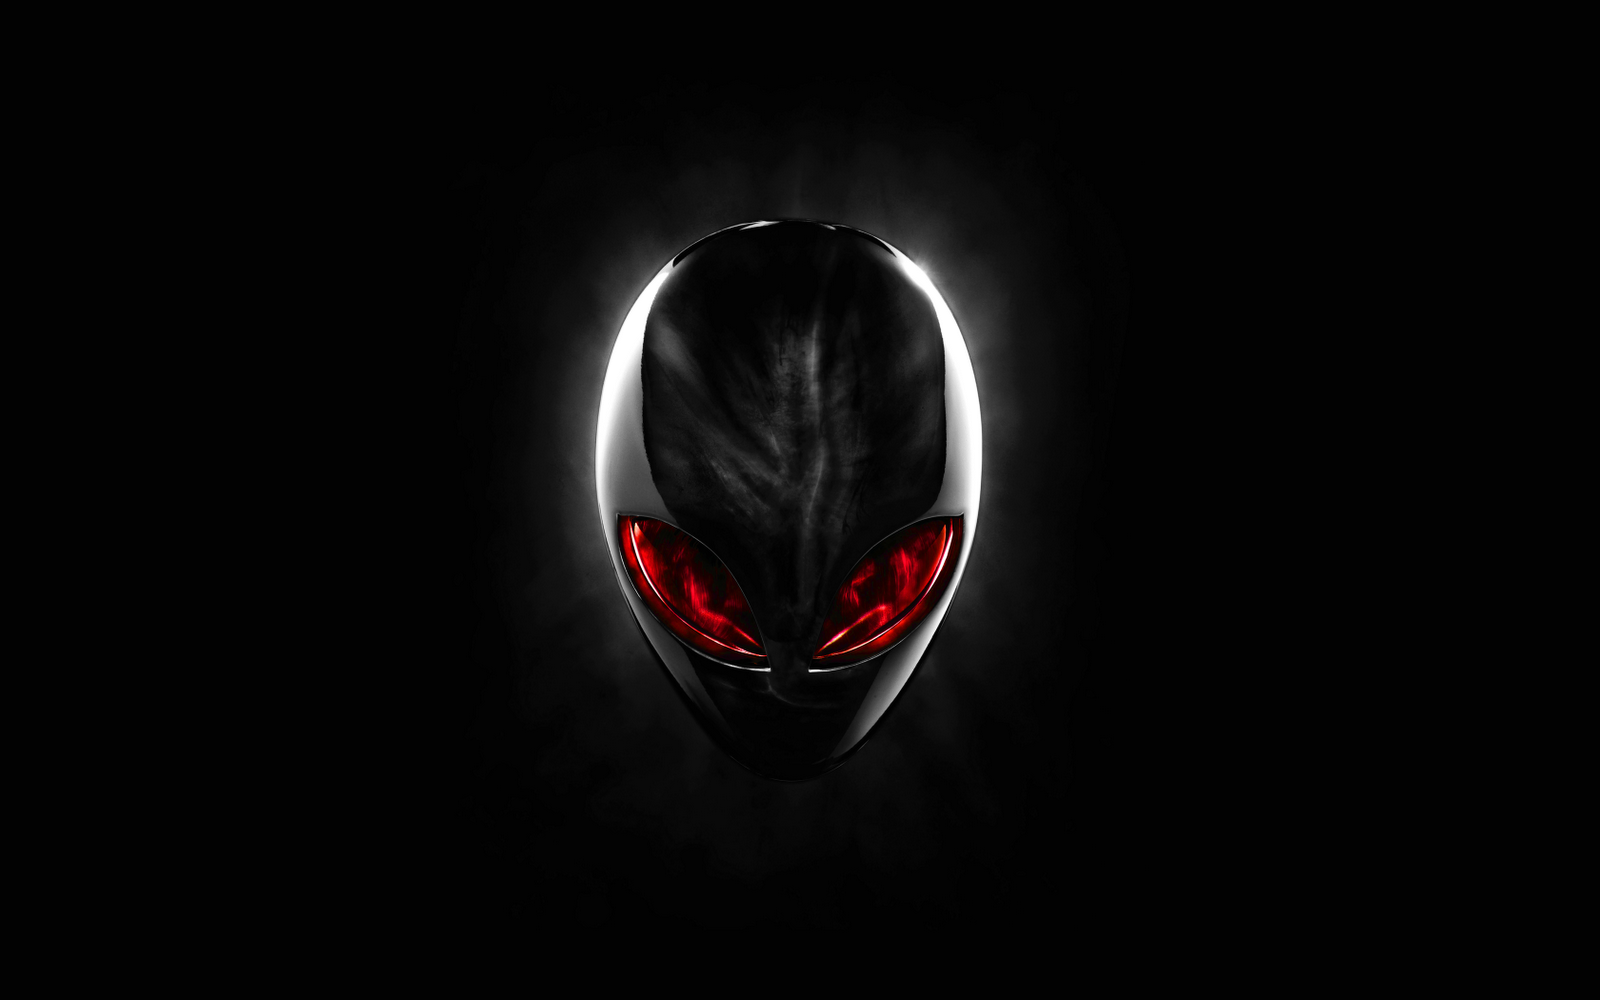 Free Download Hd Alienware Red Eyes Wallpapers Wallpaper